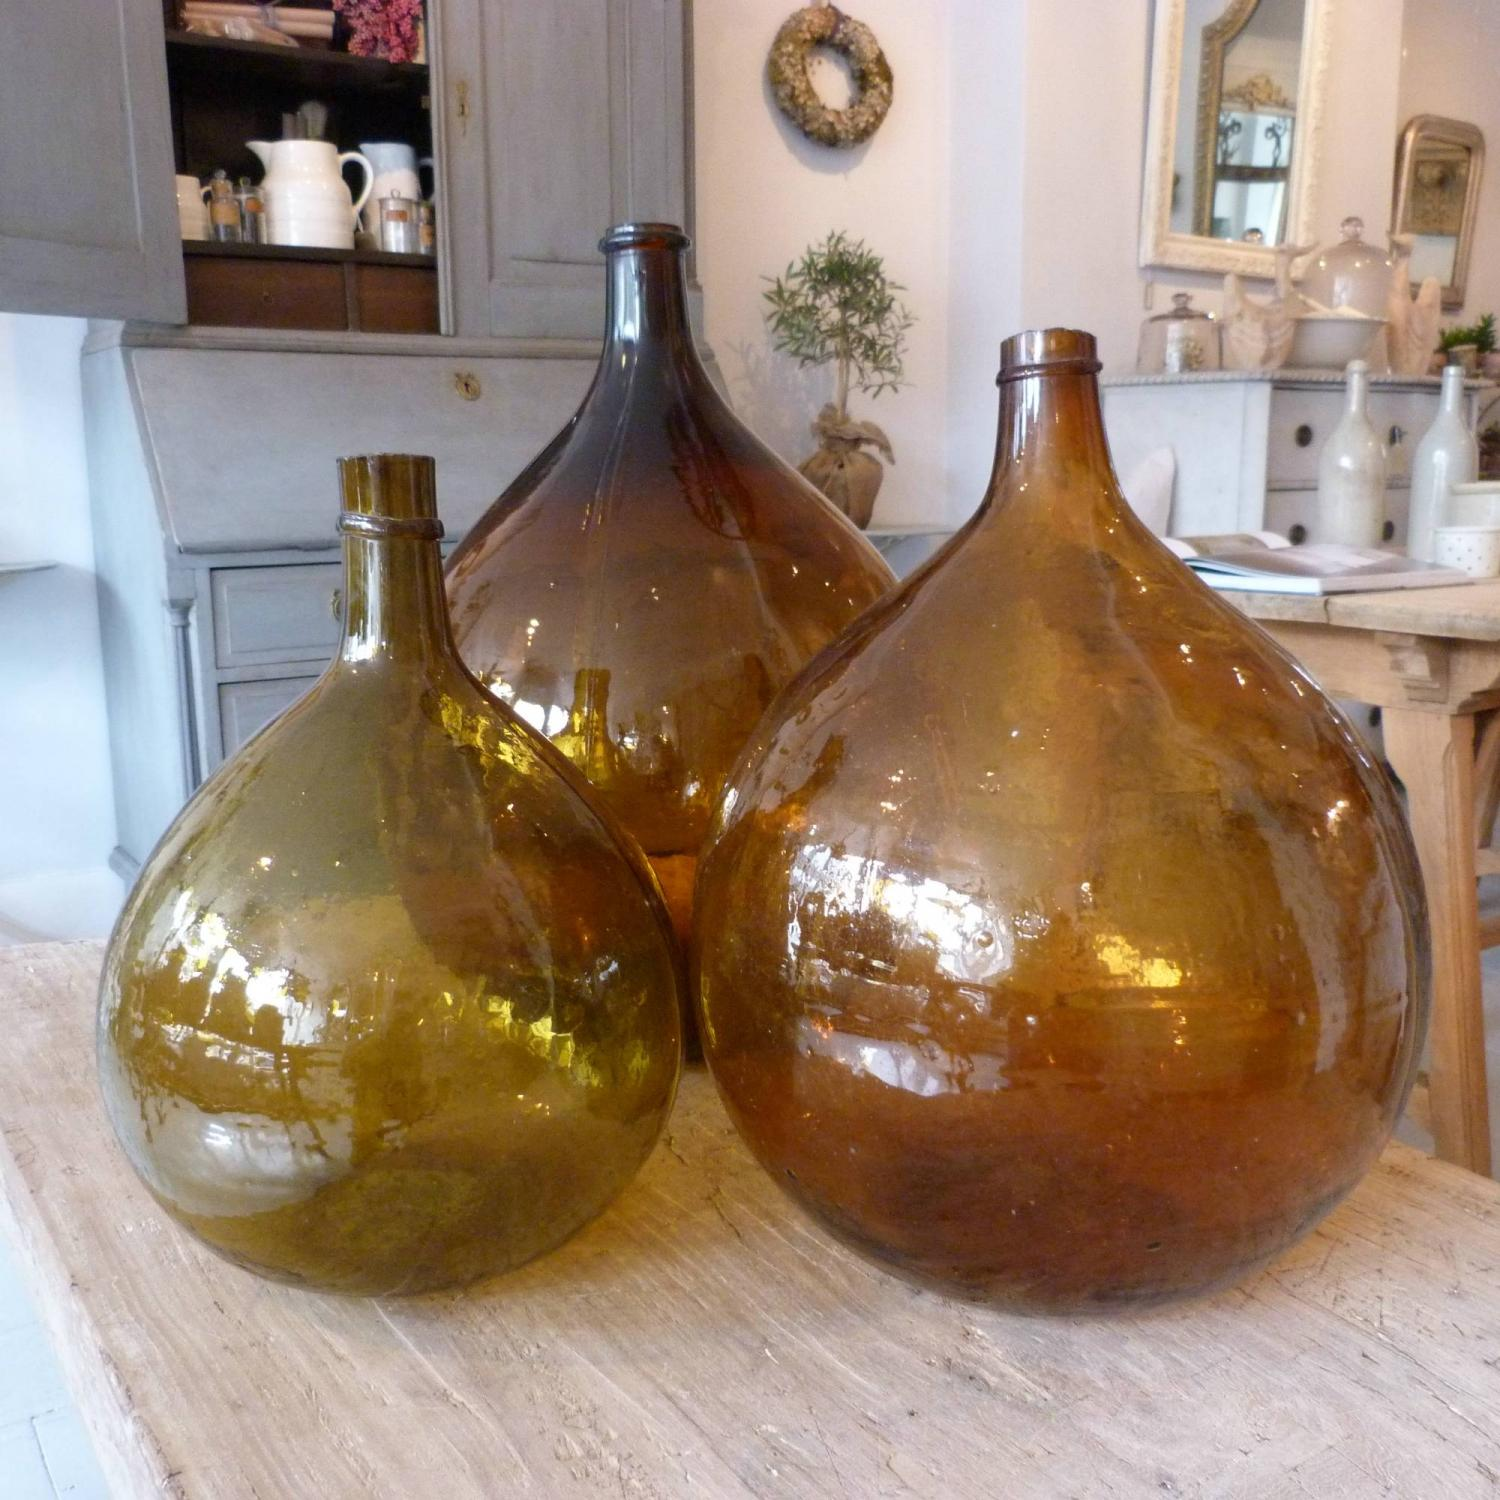 SET OF 3 MARON DEMI-JOHN BOTTLES